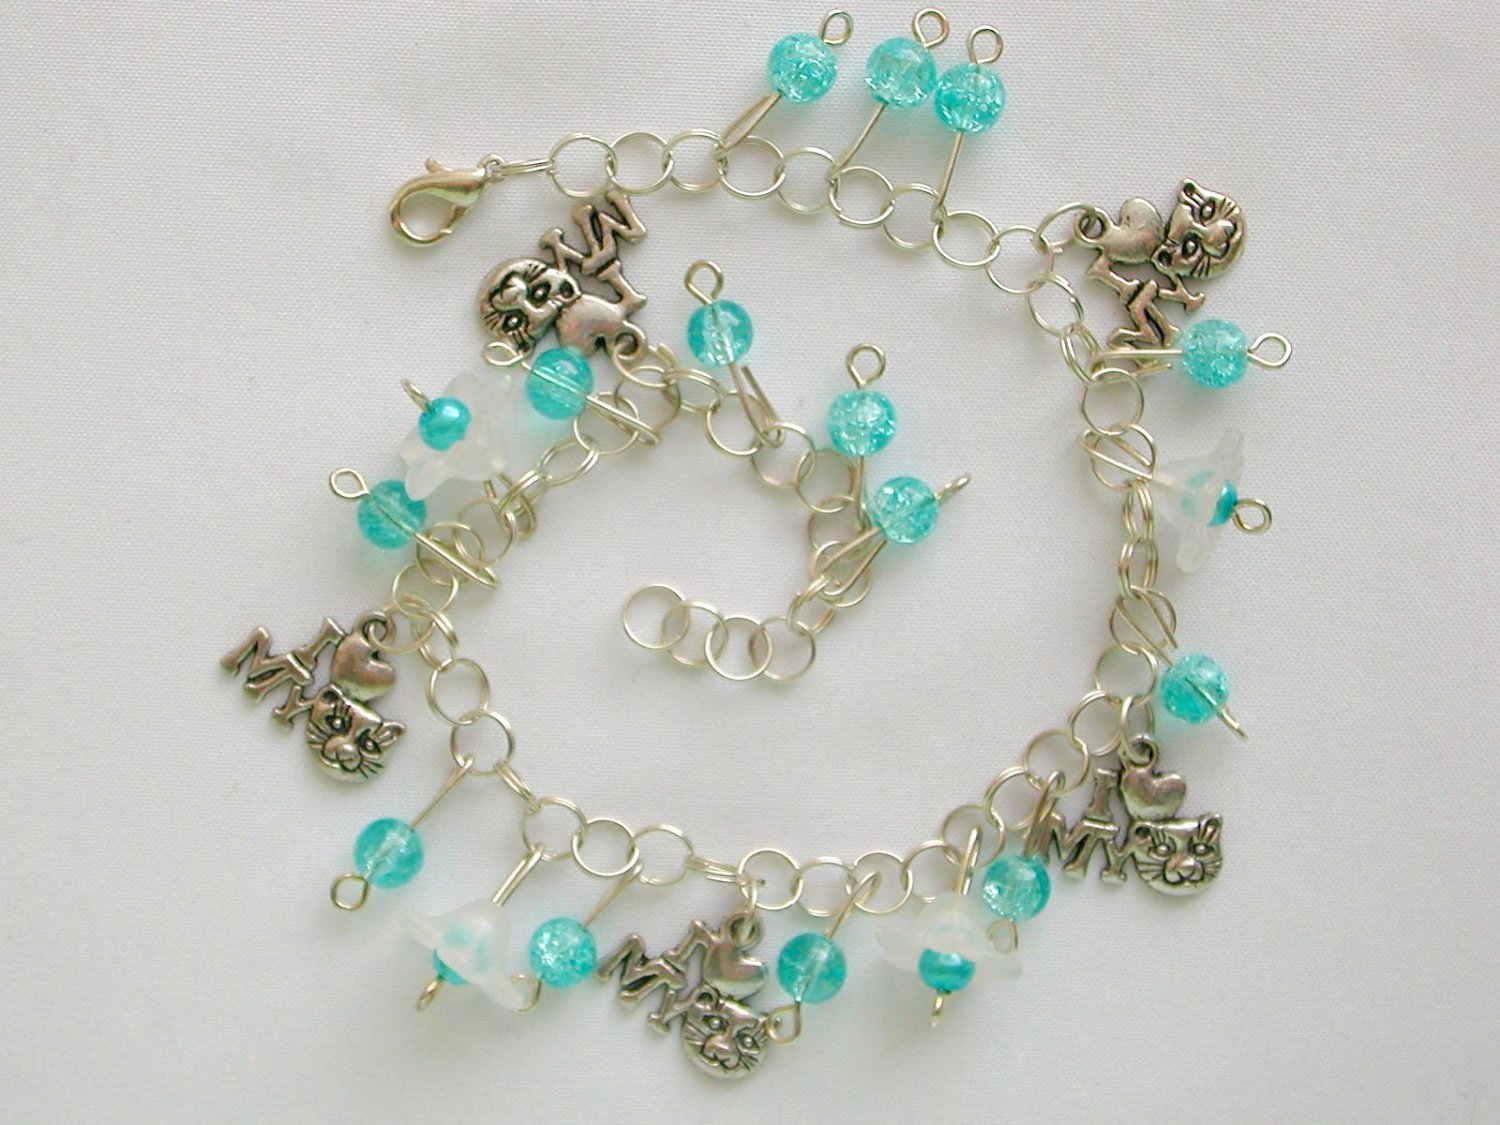 I love My Cat Bell Flower Aqua Blue Crackle Glass Bead Anklet Bracelet